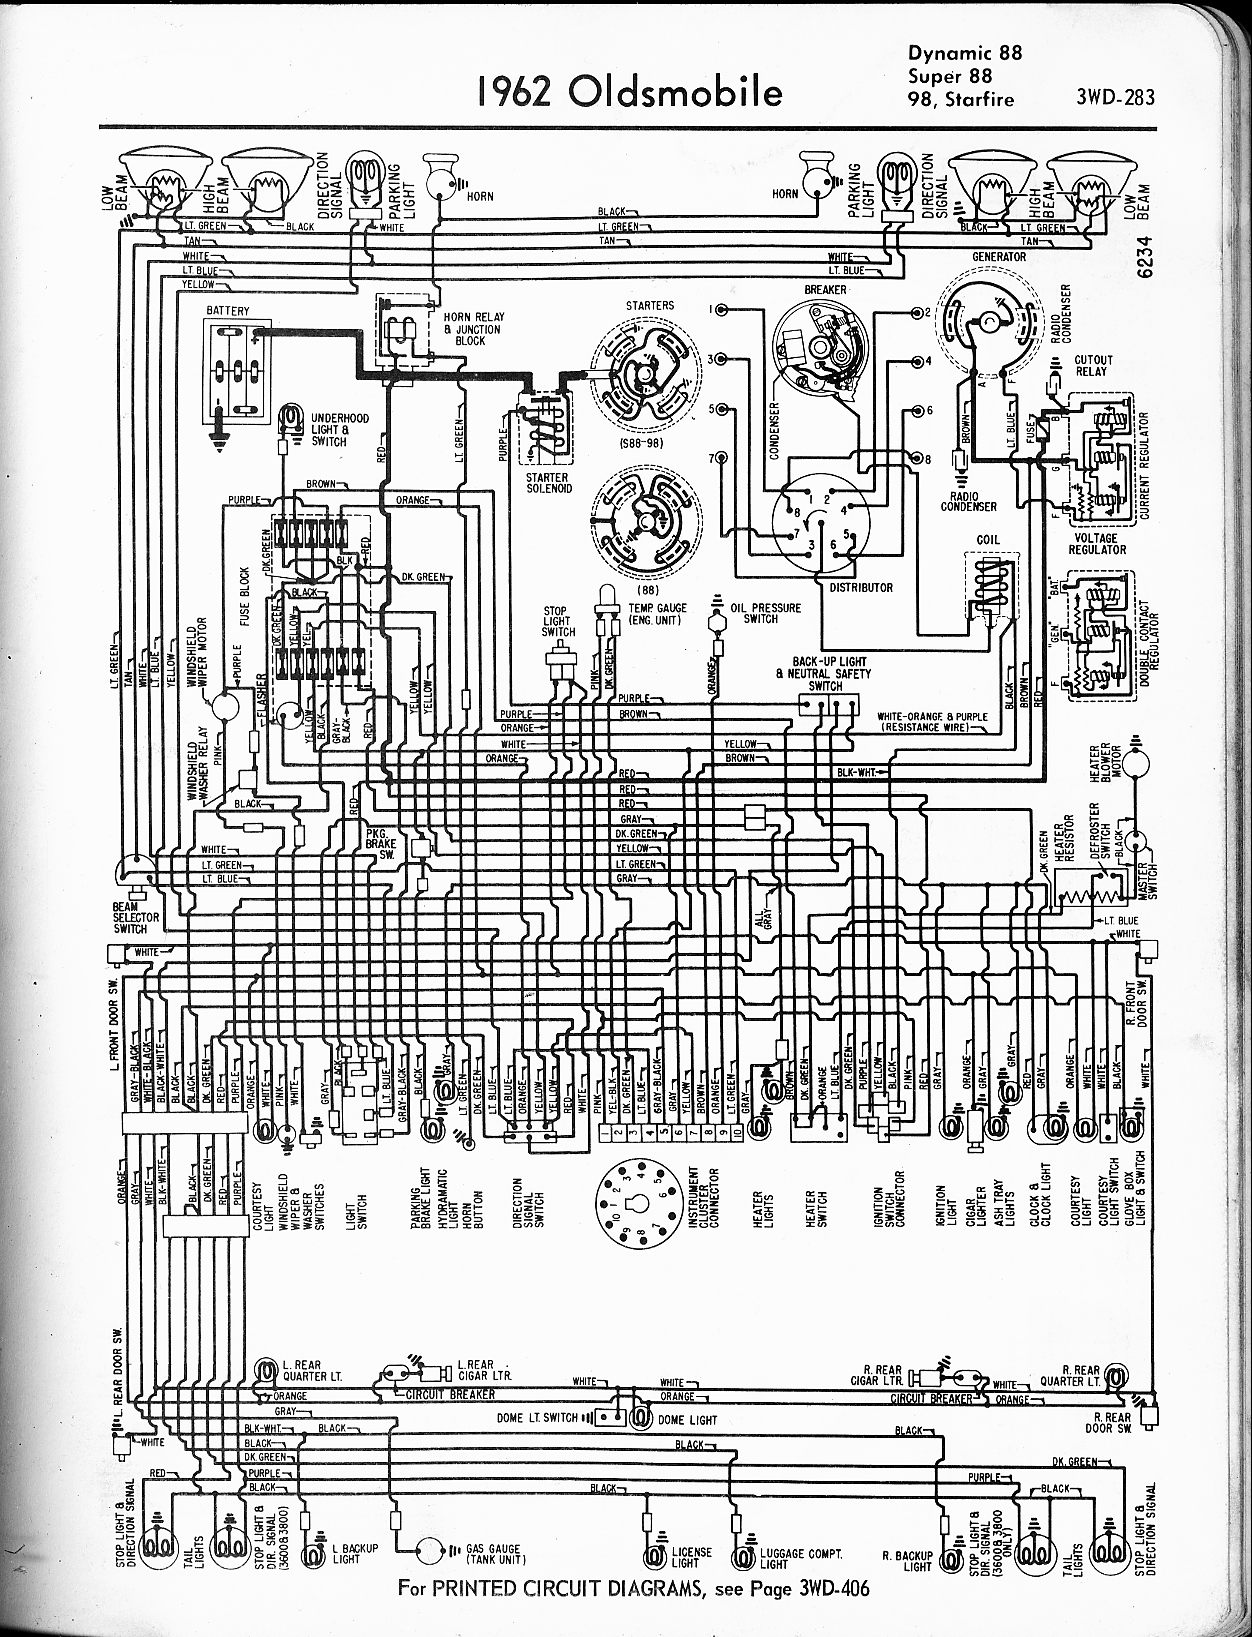 1969 oldsmobile wiring diagram wiring diagram online 1950 Cadillac Wiring Diagram wiring diagram 1969 oldsmobile 442 wiring diagram 1969 chevy truck wiring diagram 1955 oldsmobile wiring diagram